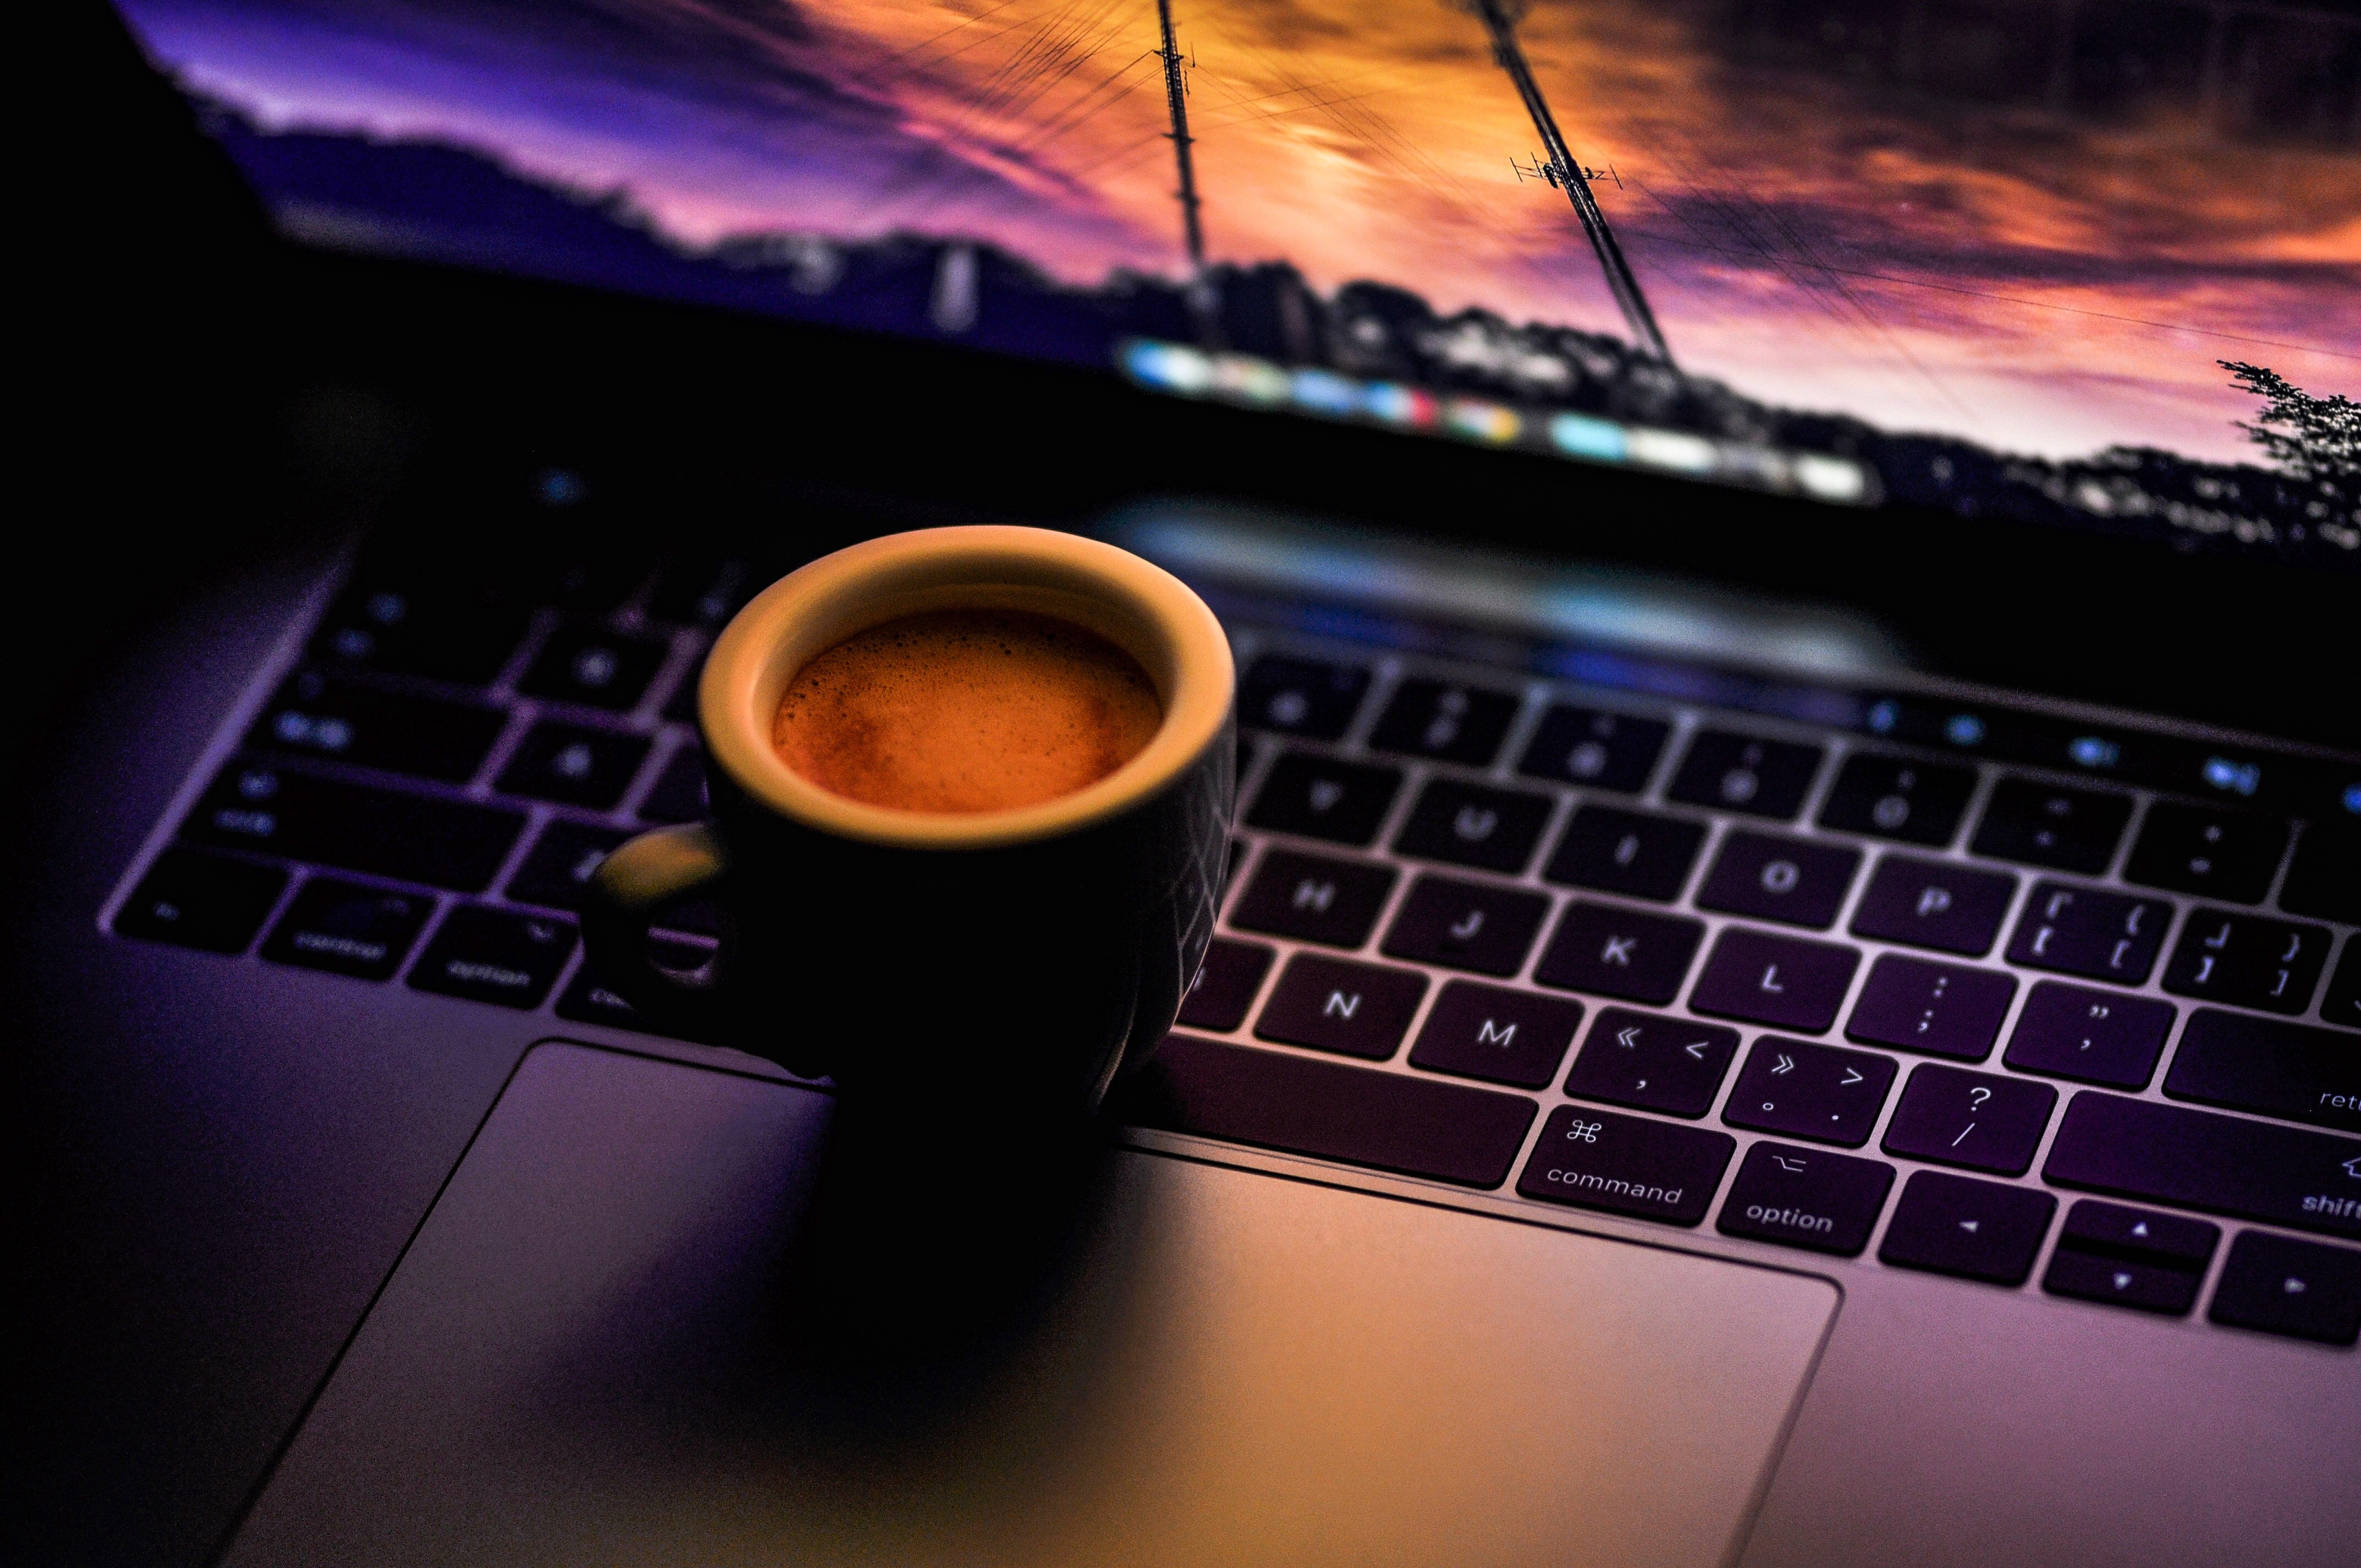 black ceramic coffee mug on MacBook Pro